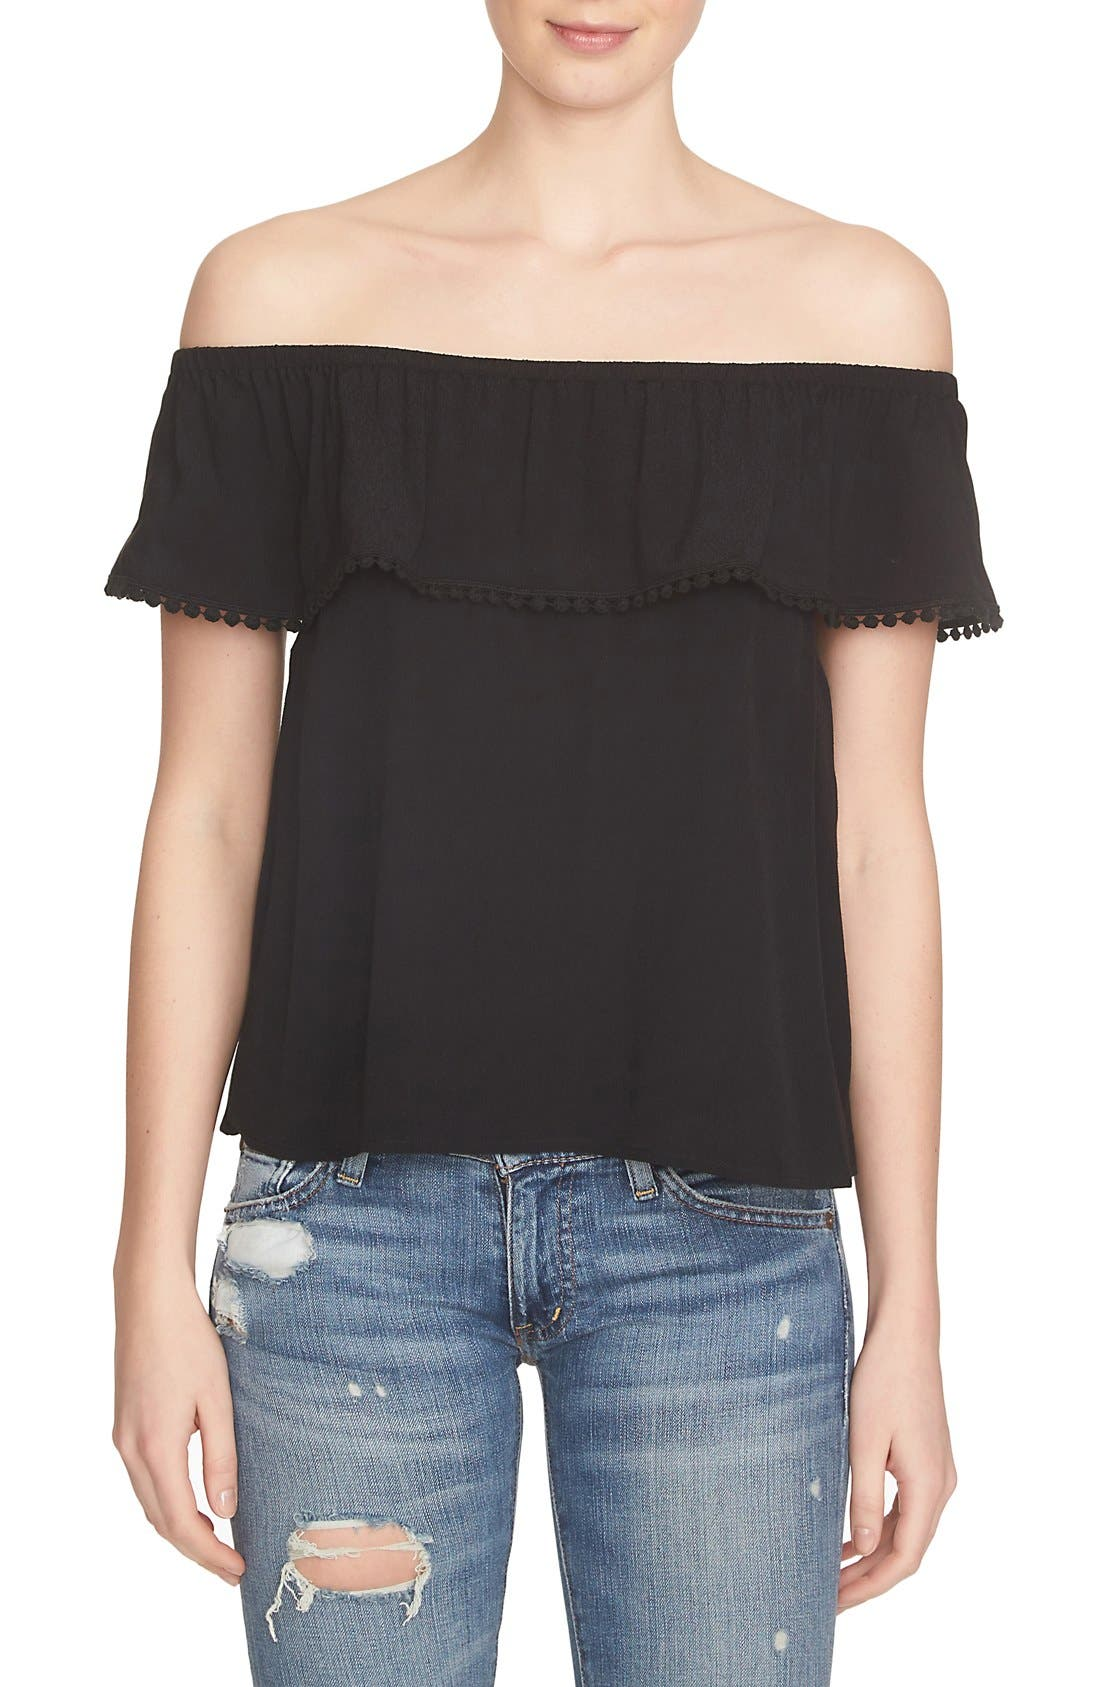 Alternate Image 1 Selected - 1.STATE Ruffle Off the Shoulder Top